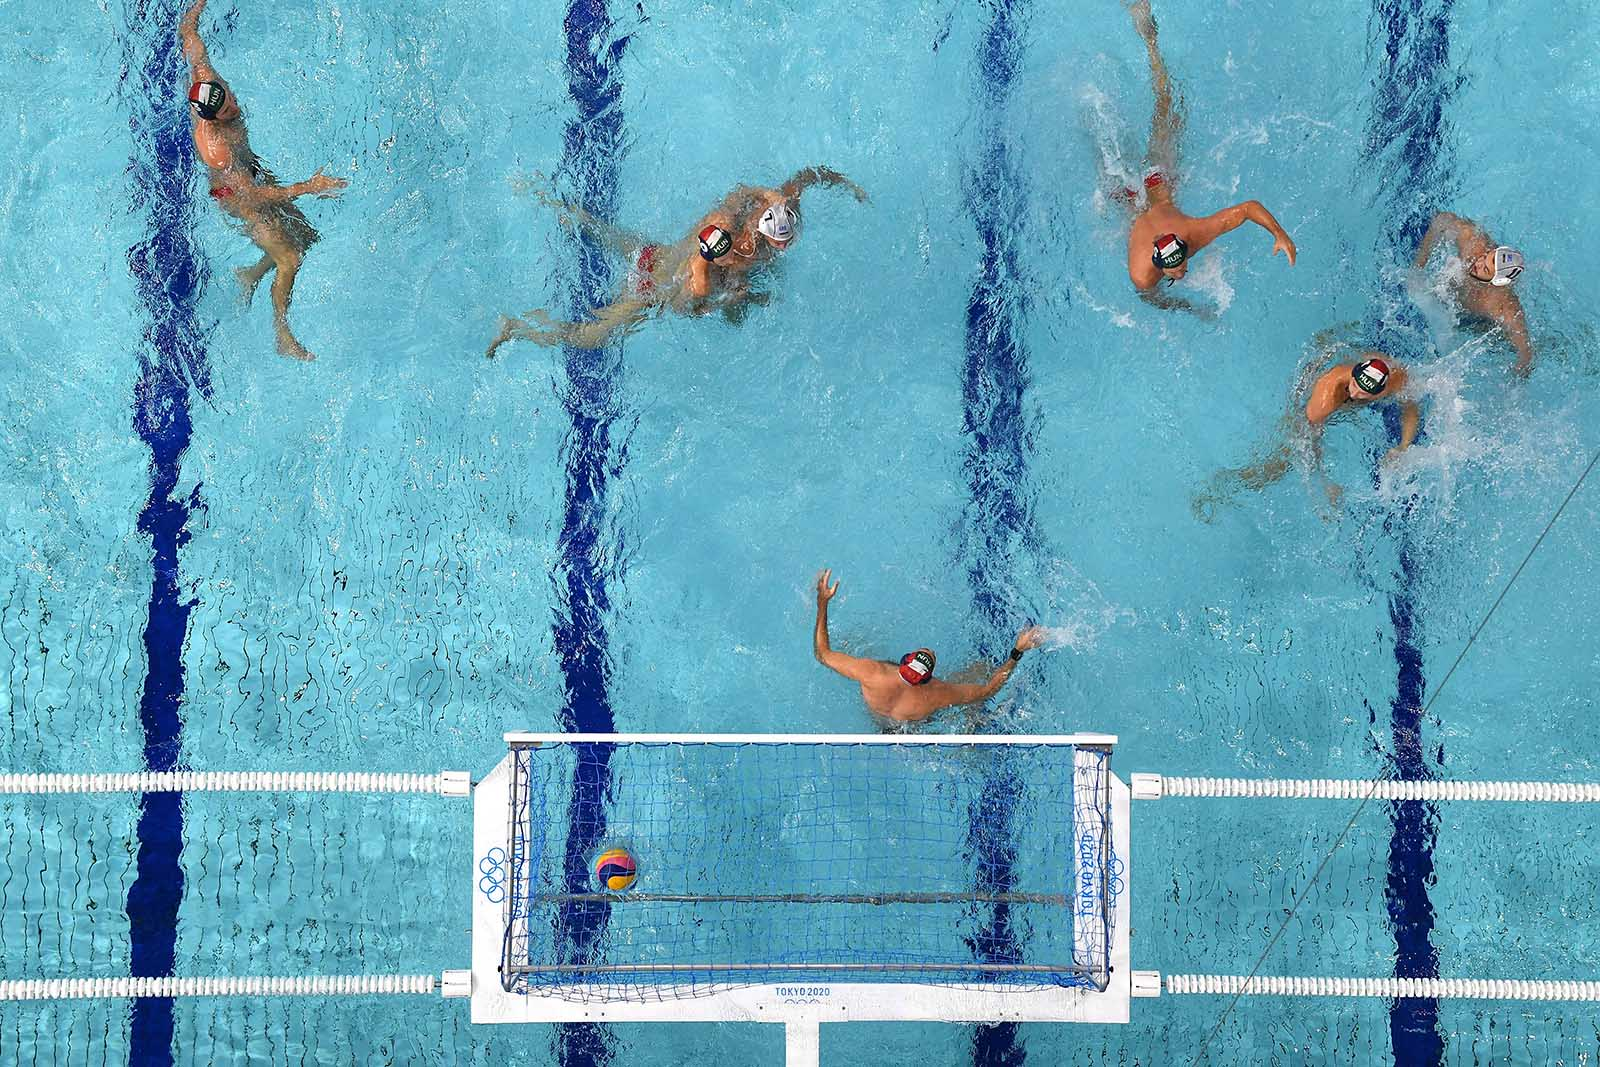 An overview shows Hungary's Viktor Nagy conceding a goal to Greece during the men's water polo semi-final match on August 6.